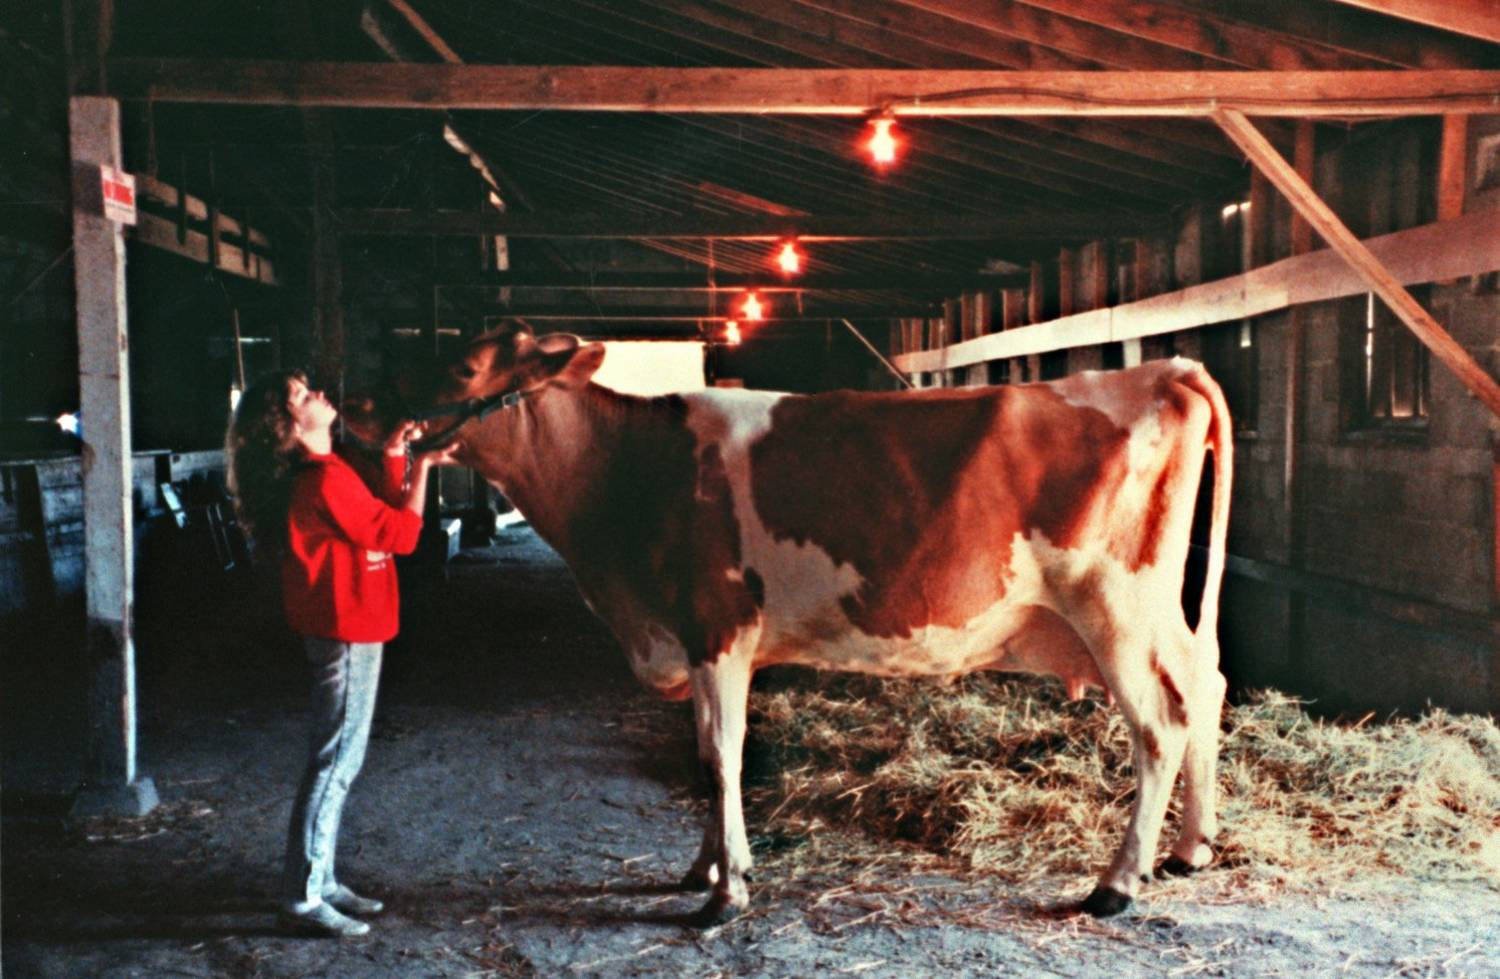 In a barn, a young woman playfully kisses a cow.